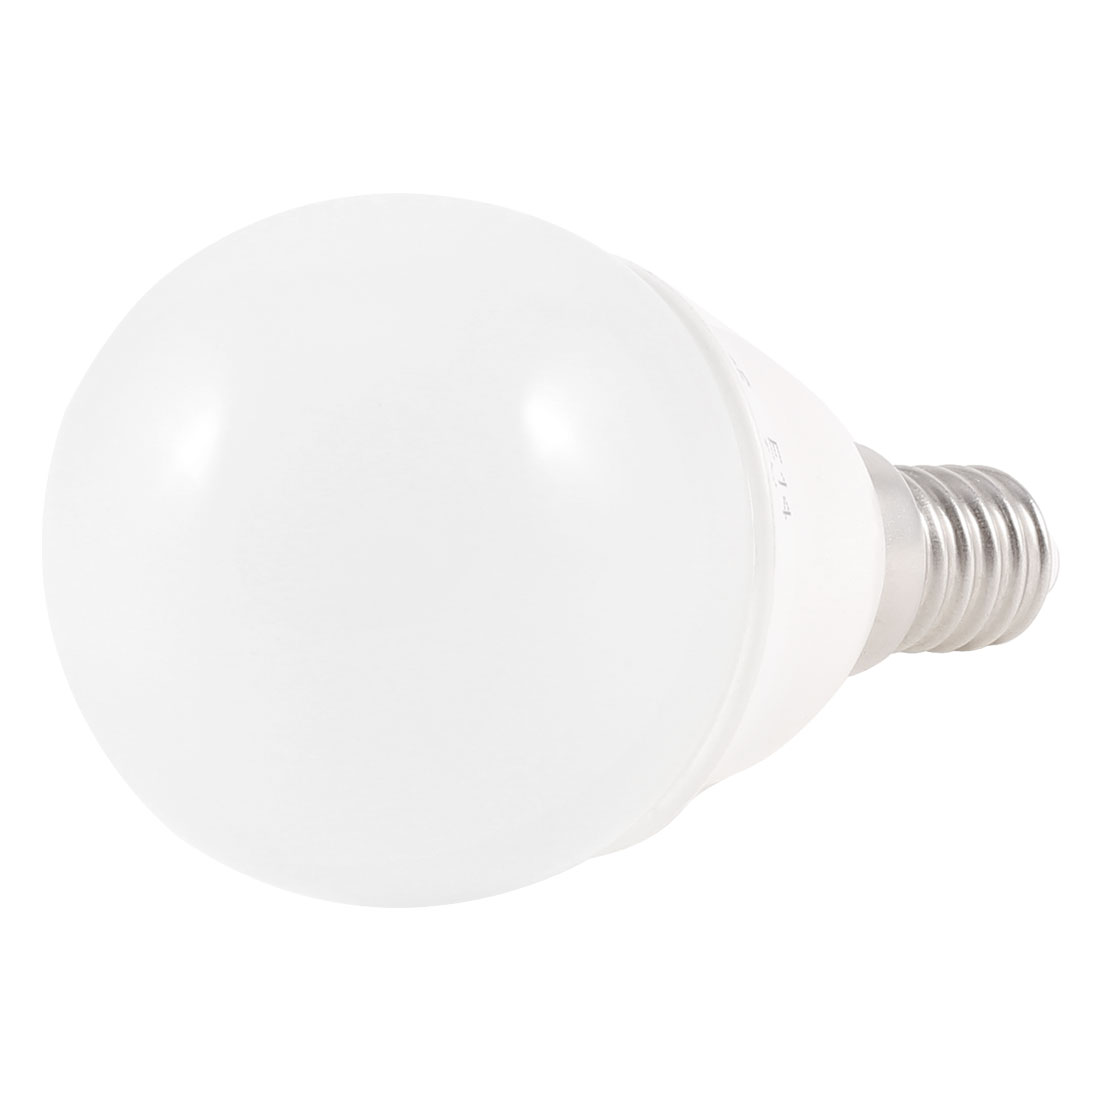 Bedroom E14 Screw Base 6500K White LED Light Ball Bulb 2W AC 220V